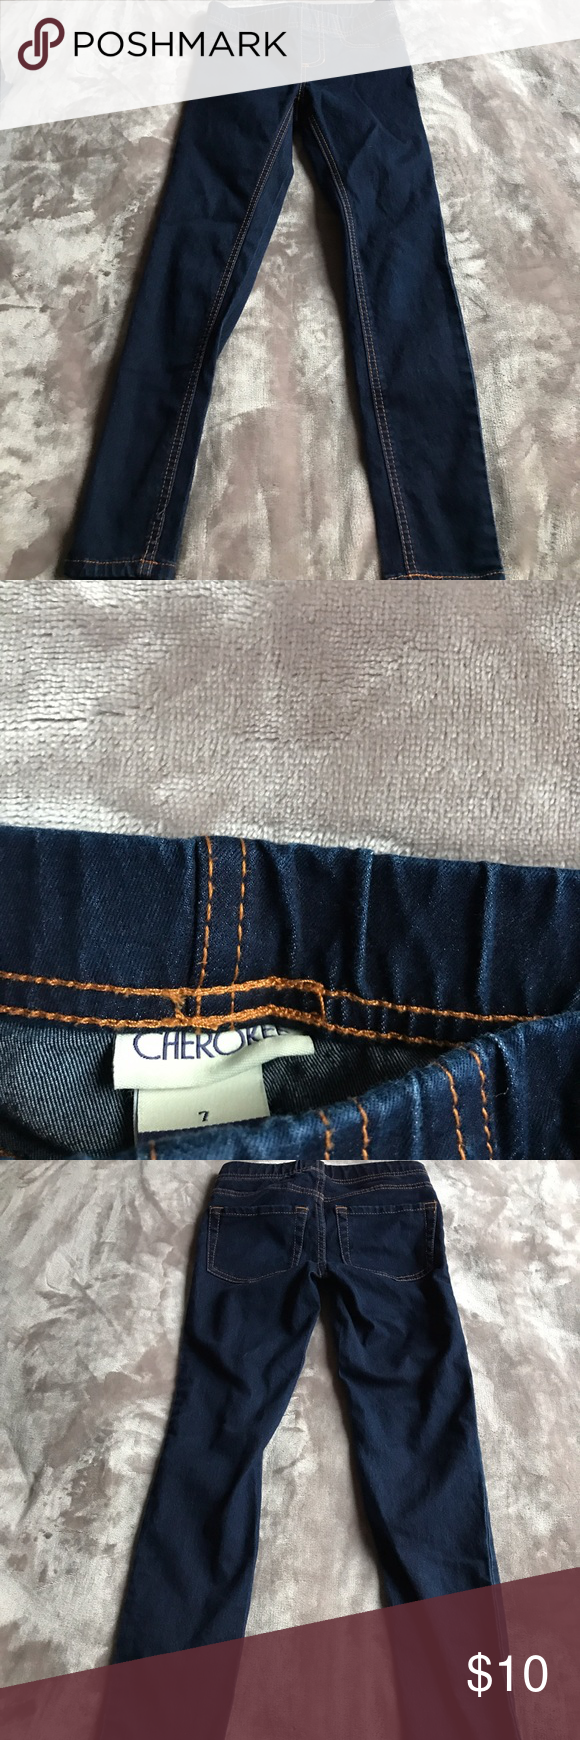 Girls Cherokee jeans. Great condition. Never worn. Cherokee Bottoms Jeans